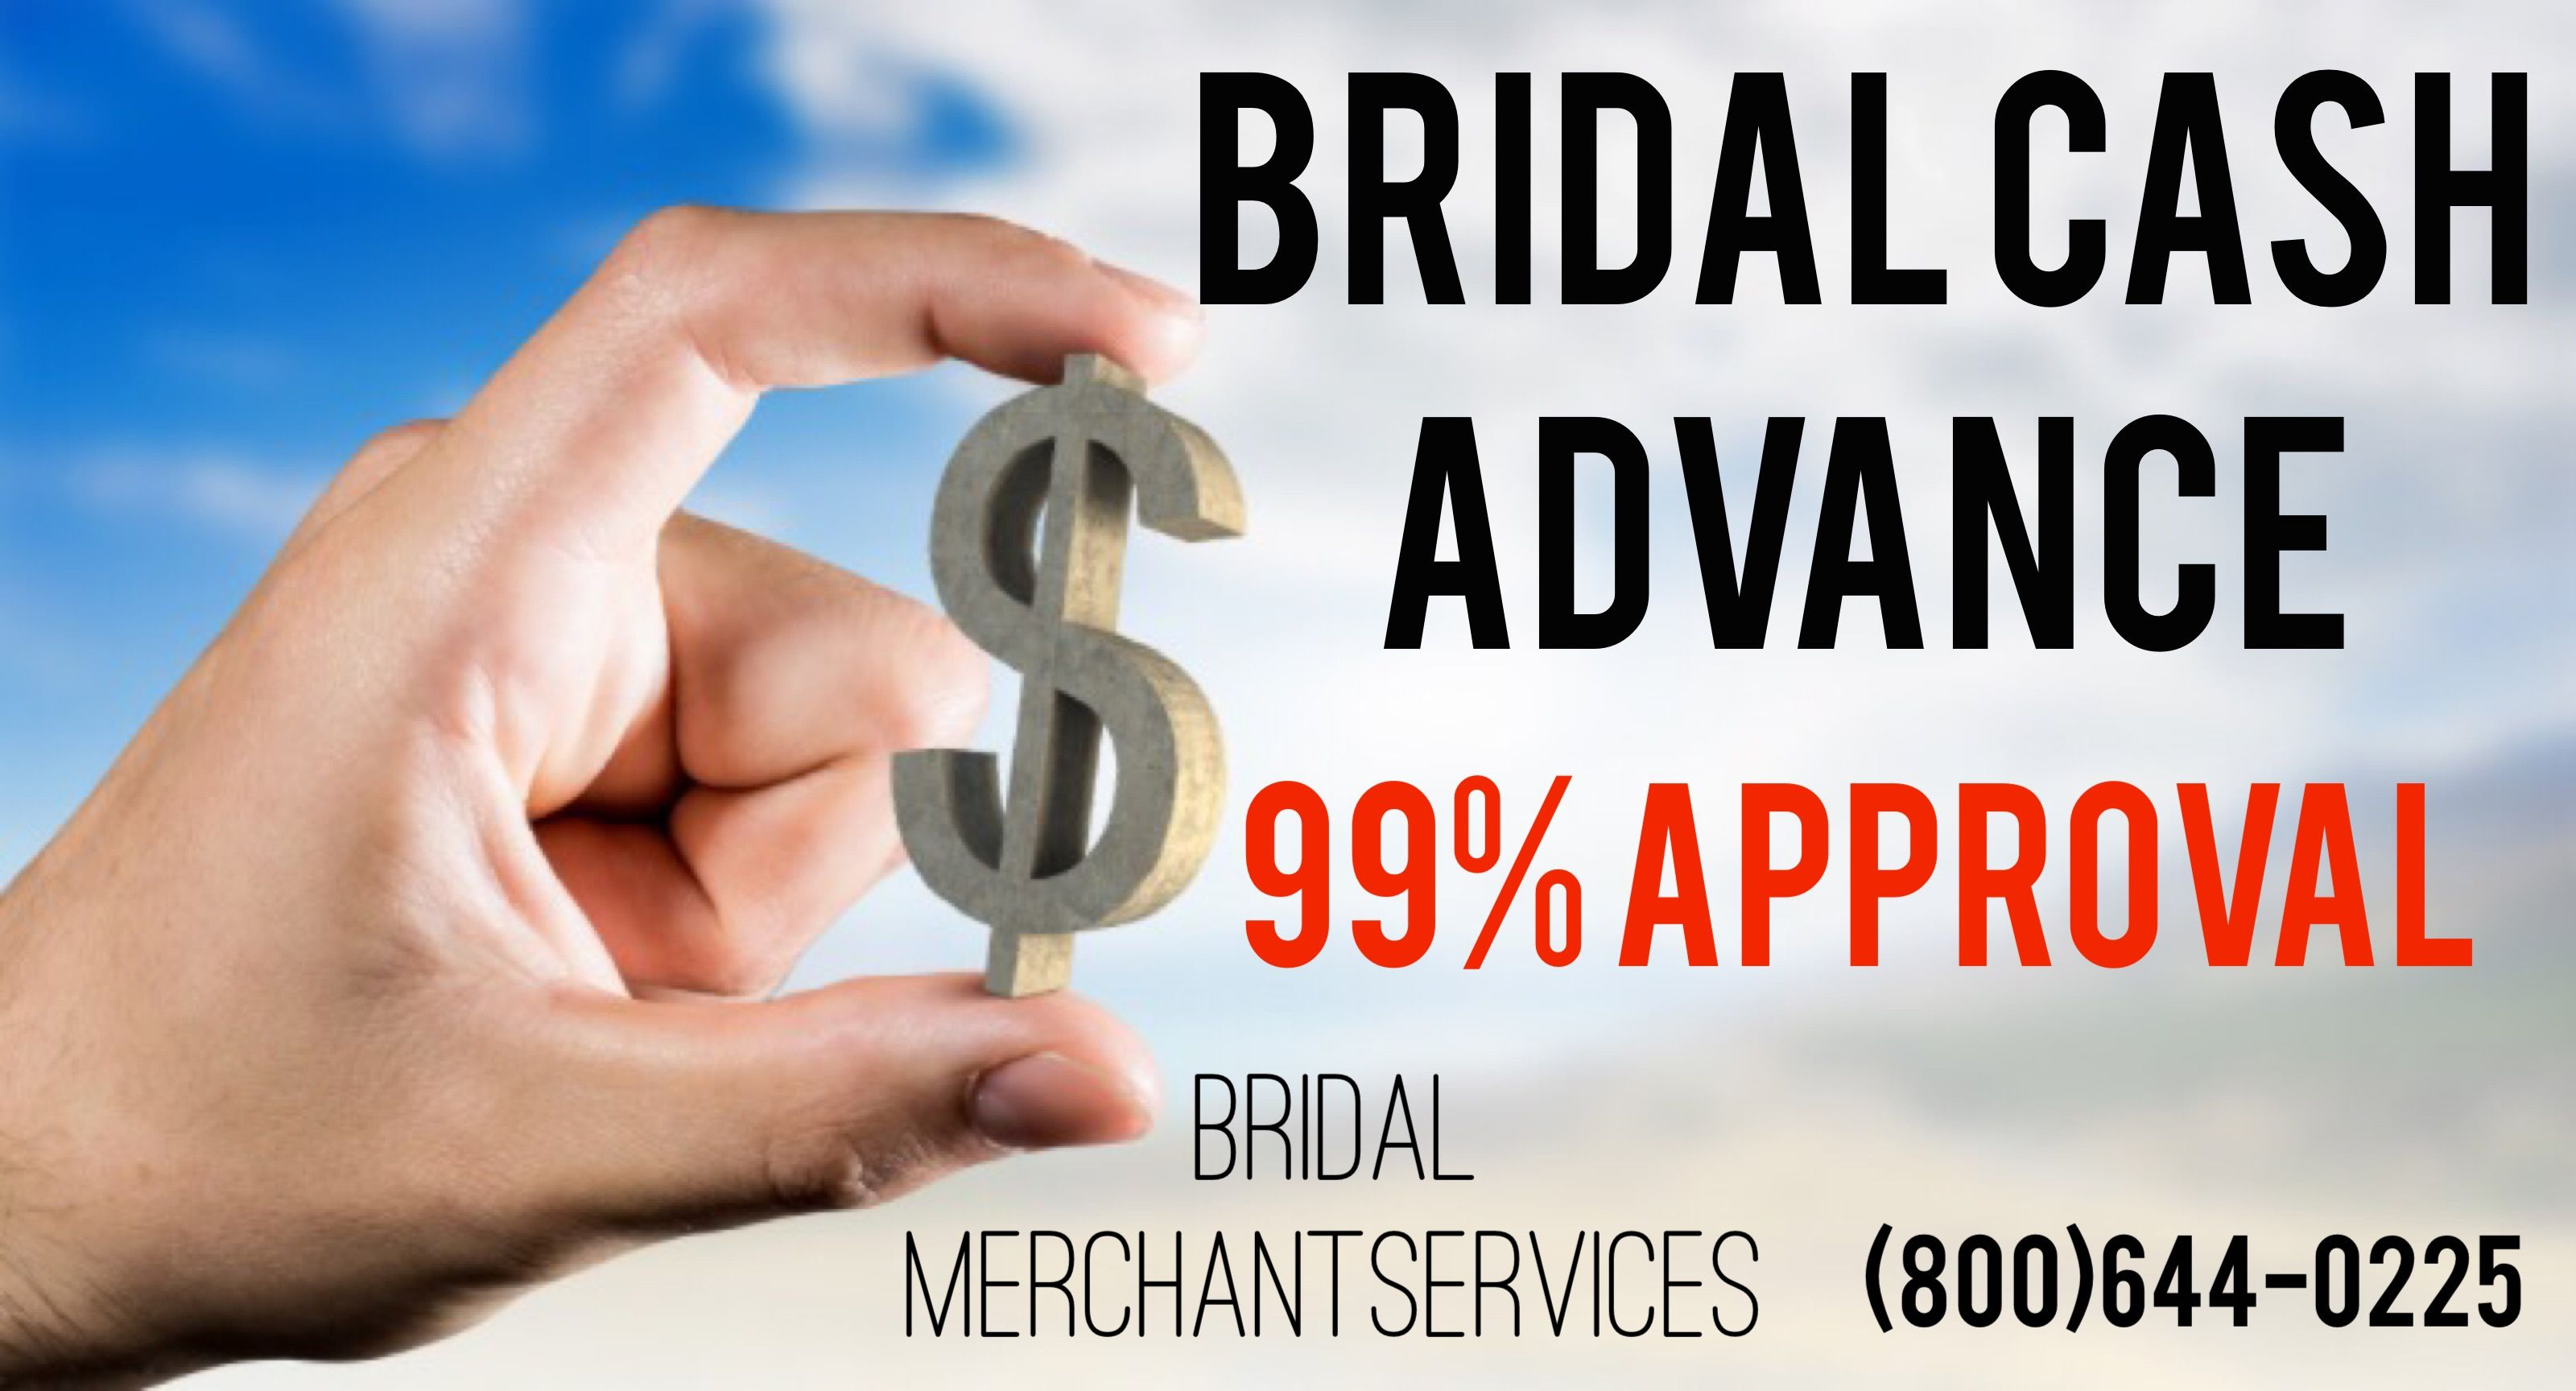 Did you know that Bridal Merchant Services offers Cash